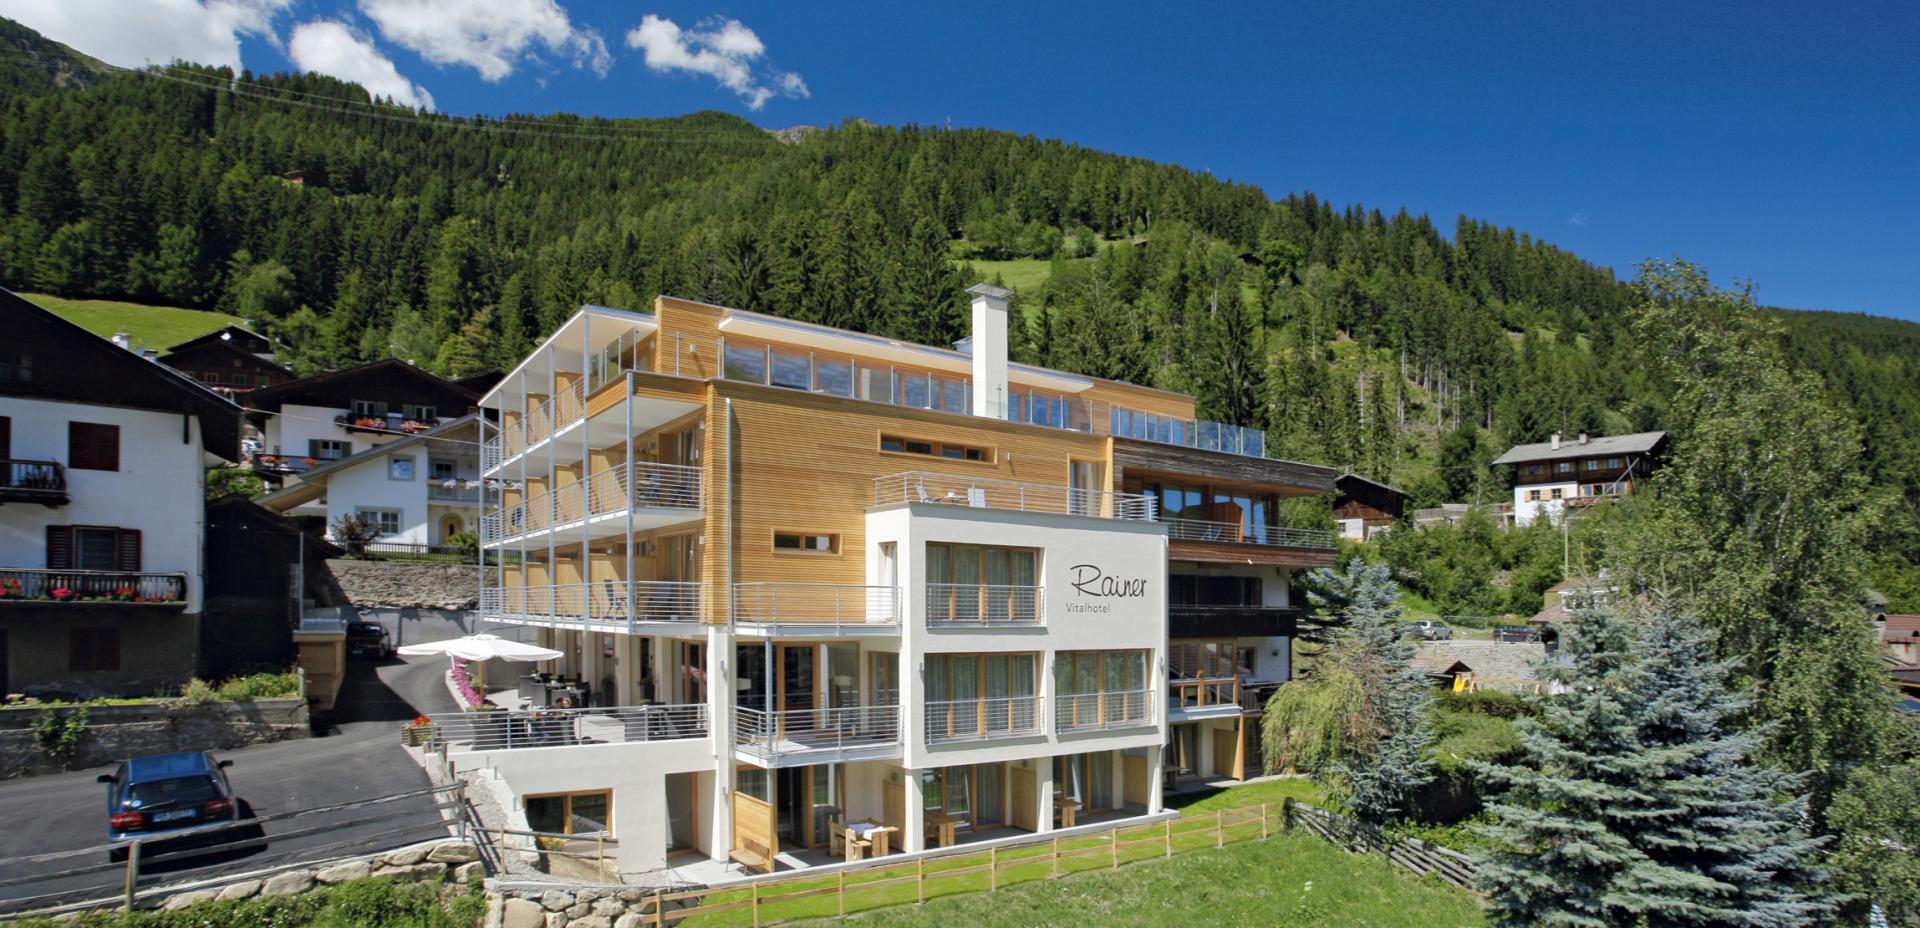 Vitalhotel Rainer in St. Walburg im Ultental